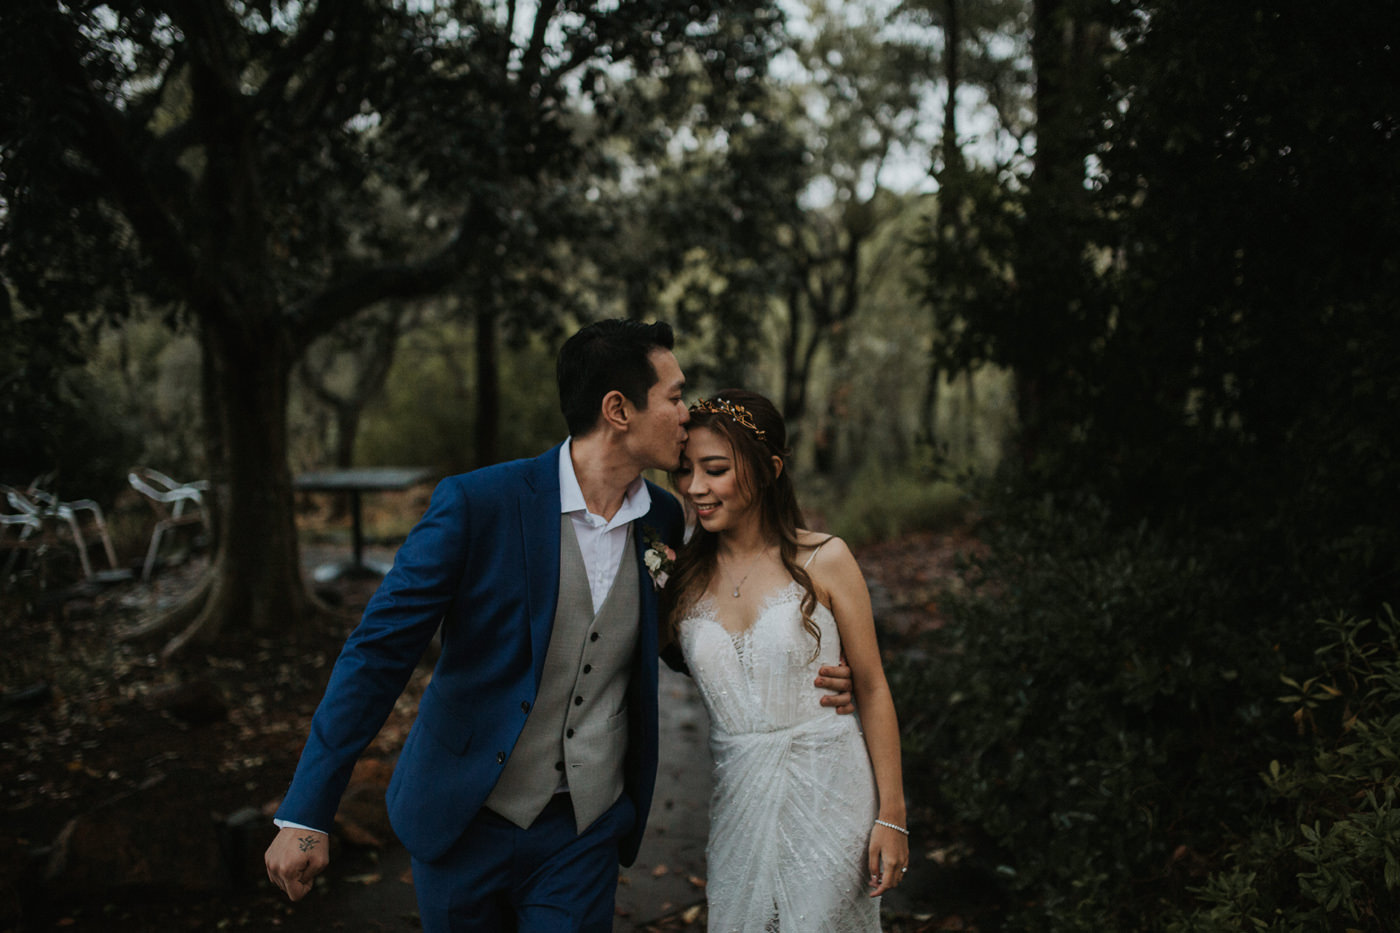 darlington estate wedding perth stephanie marcel iluminen bali photographer destination photography australia